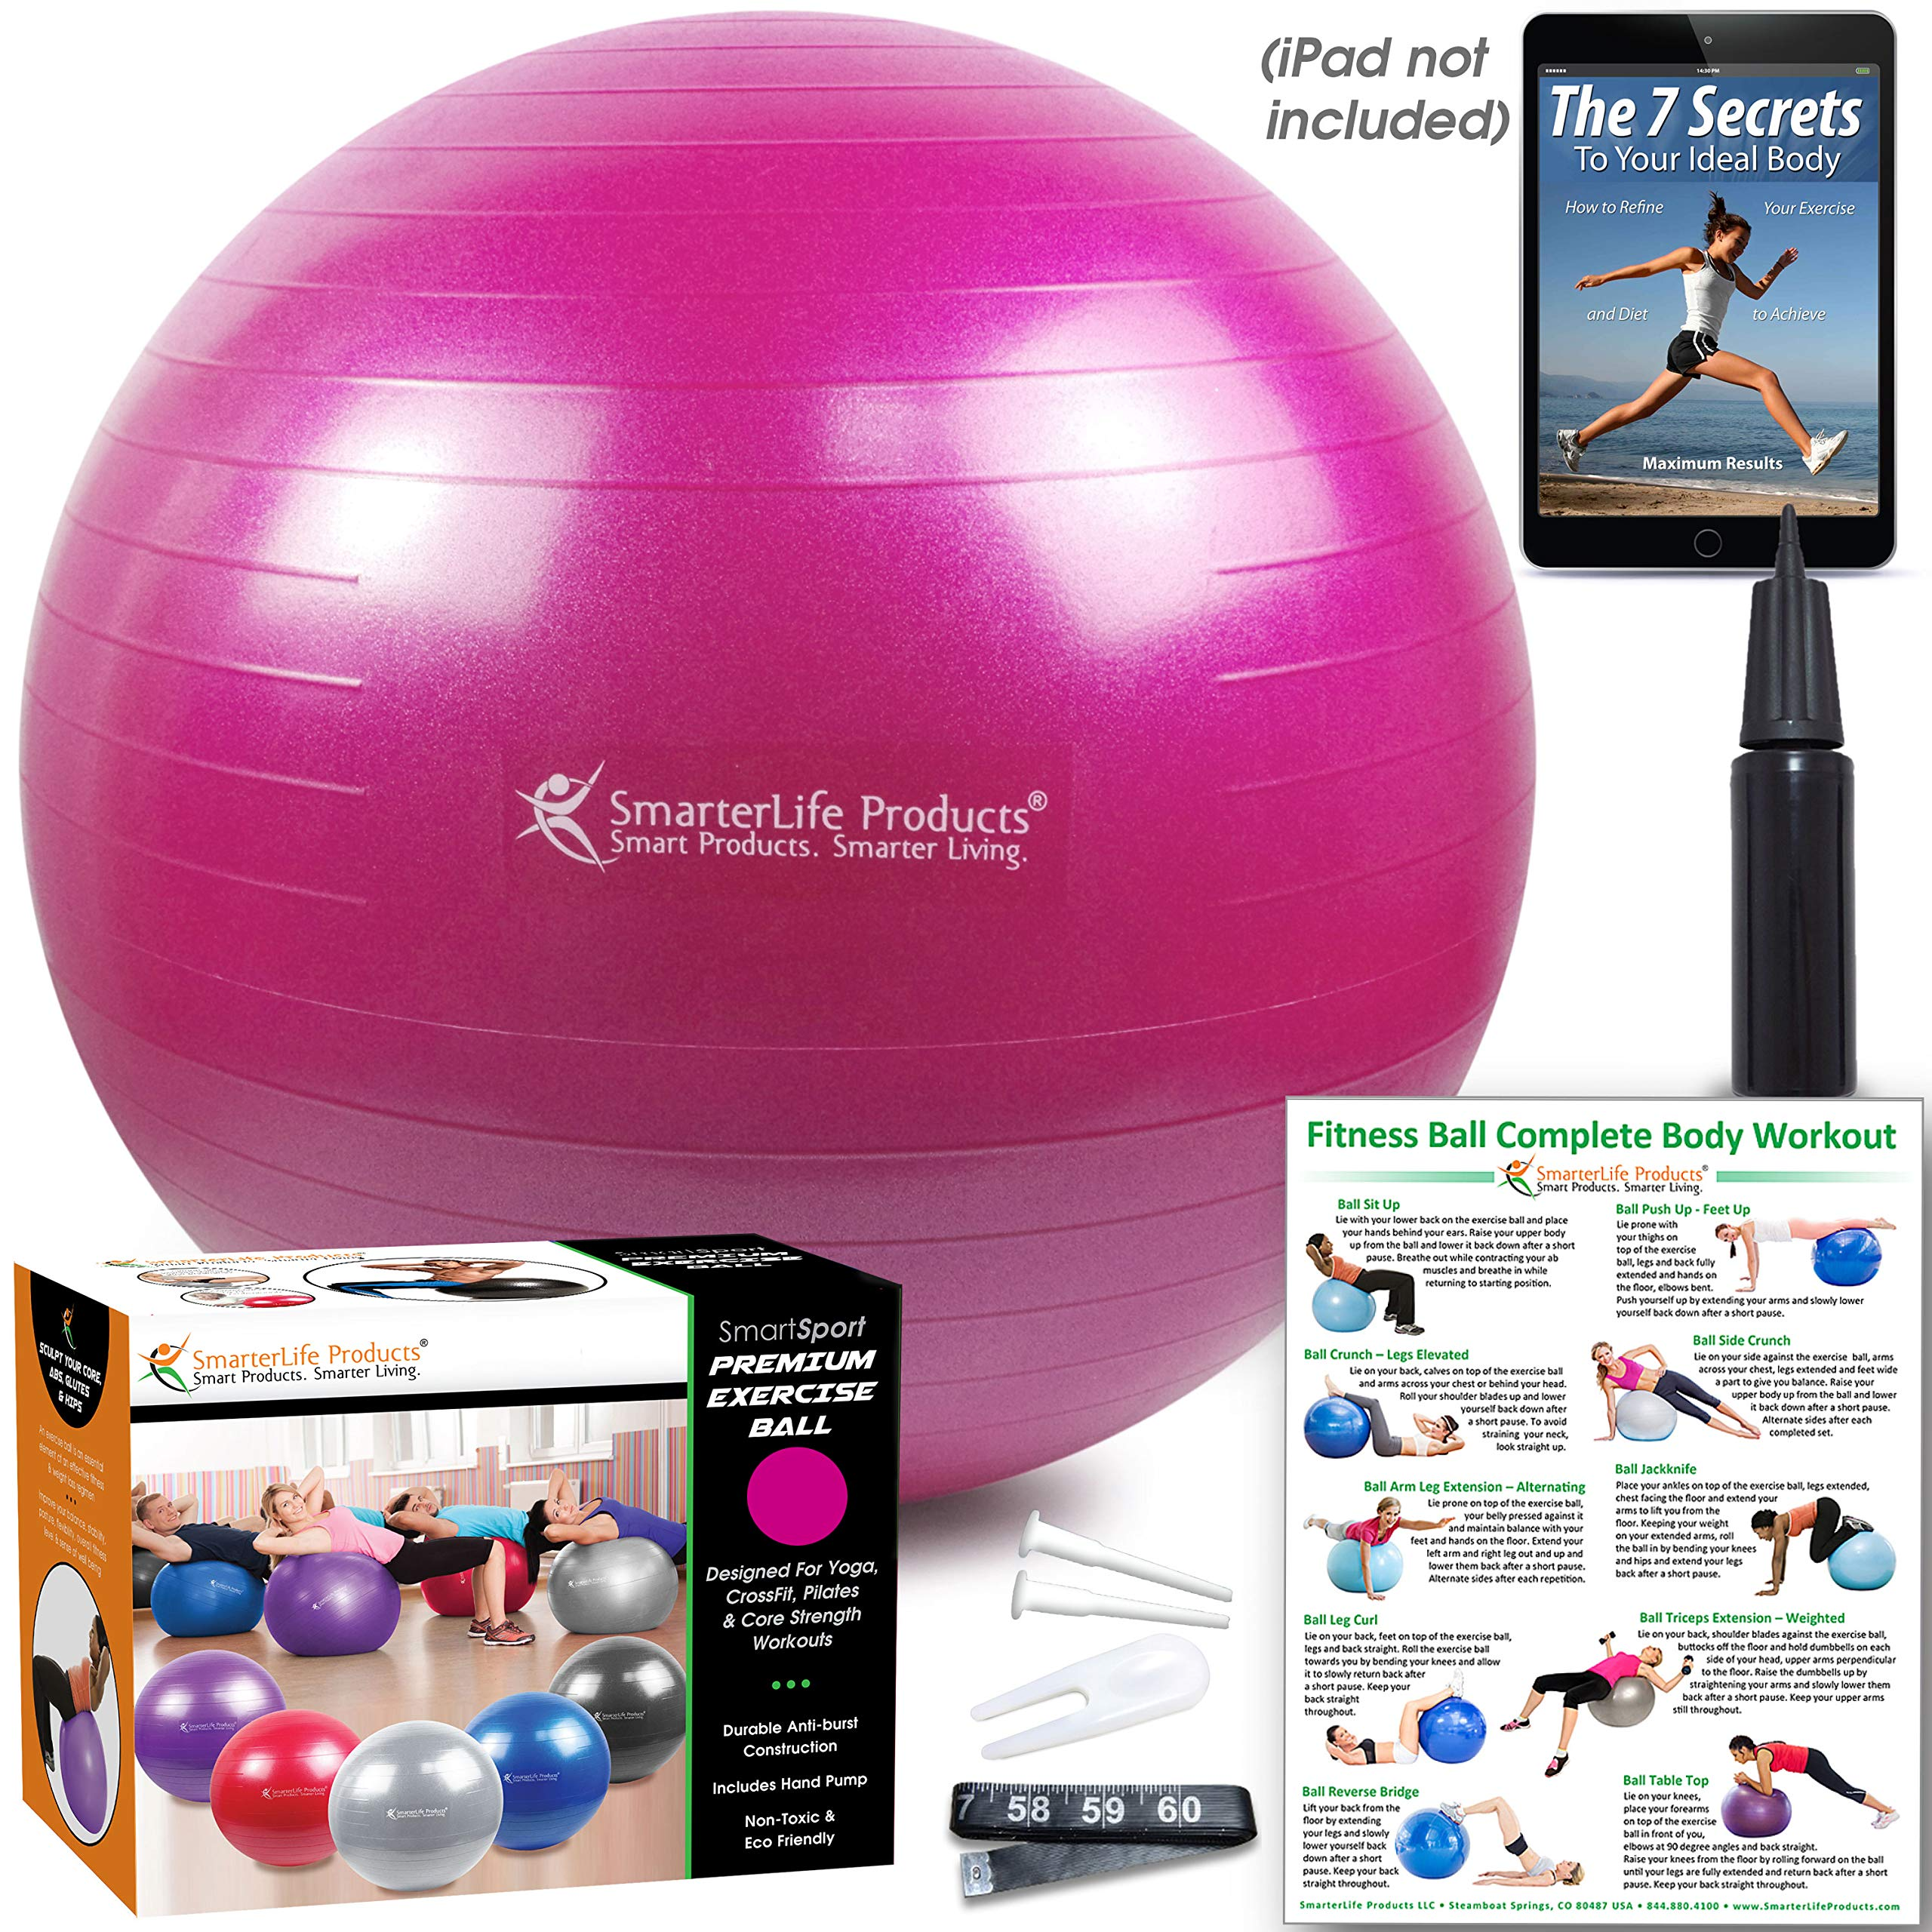 Exercise Ball for Yoga, Balance, Stability from SmarterLife - Fitness, Pilates, Birthing, Therapy, Office Ball Chair, Classroom Flexible Seating - Anti Burst, Non Slip + Workout Guide (Fuchsia, 45 cm) by SmarterLife Products (Image #5)